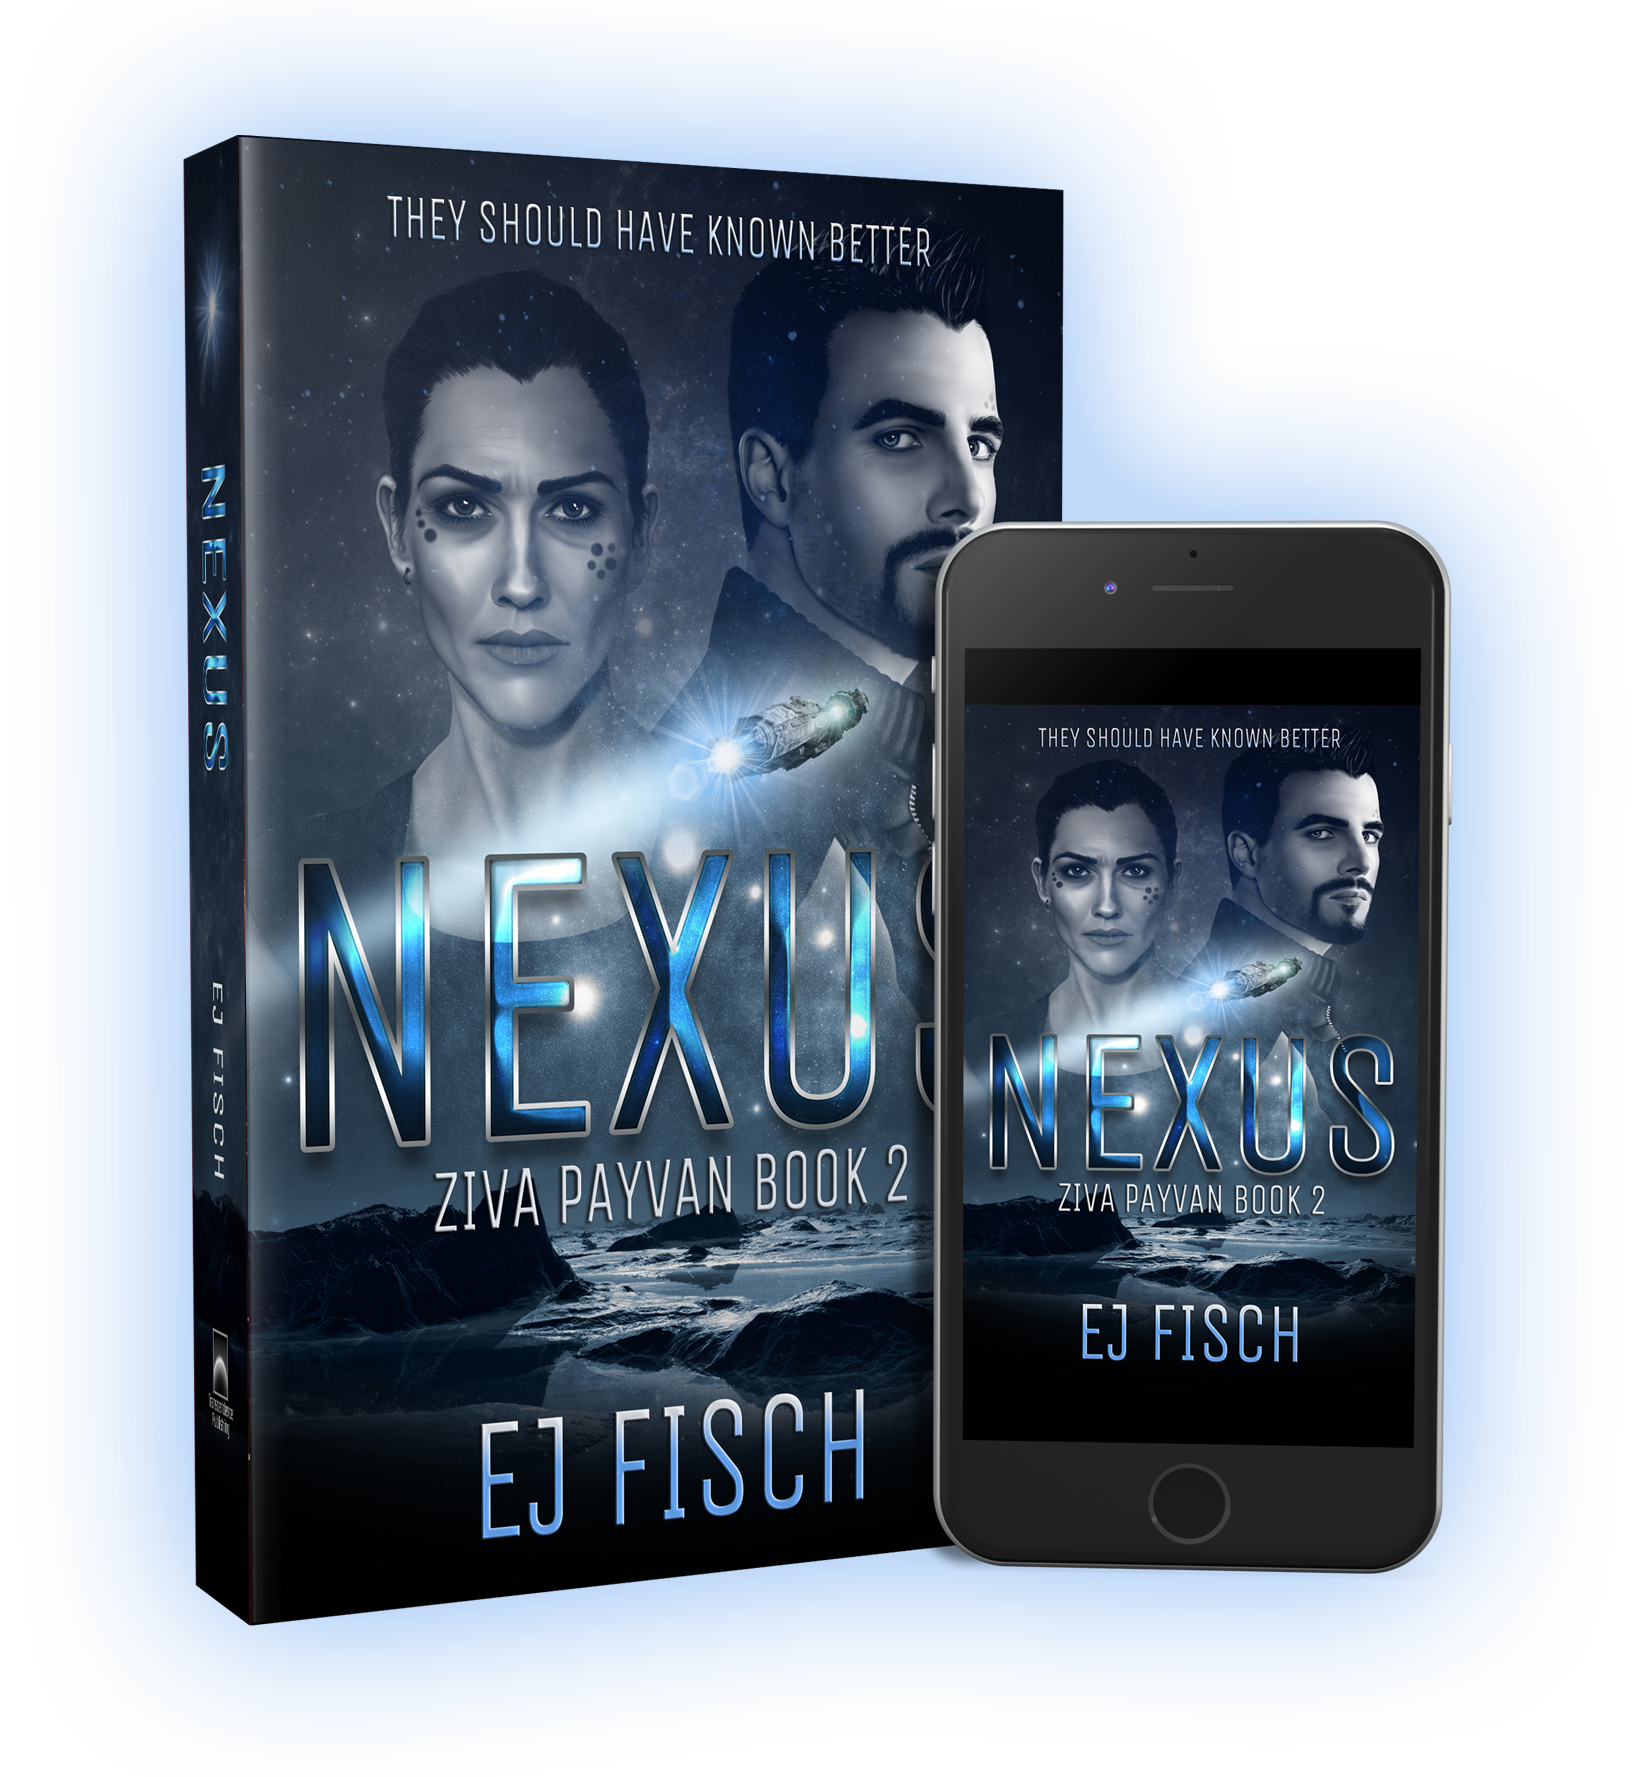 Nexus Paperback + iPhone Glow.png